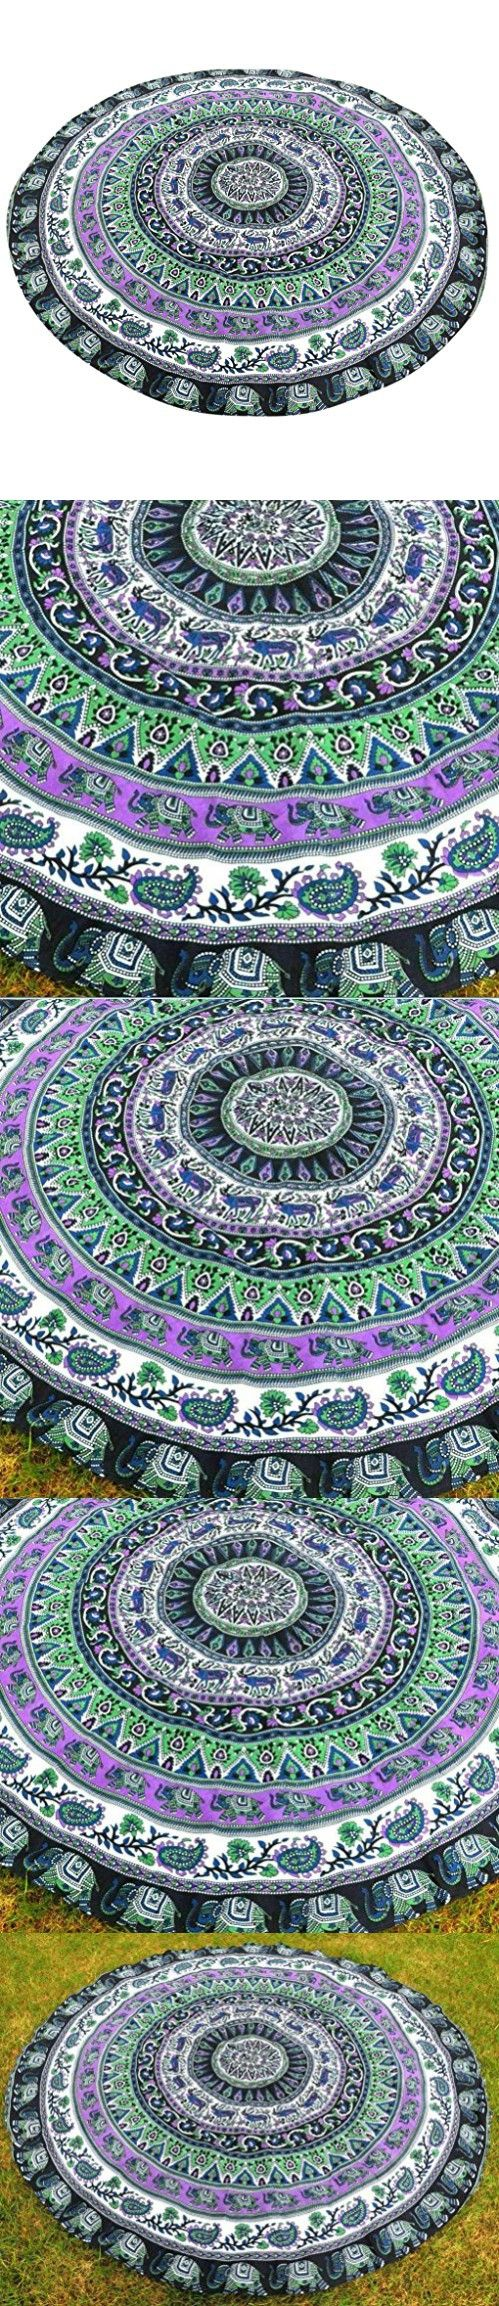 Shufua Durable and Soft Tablecloth Beach Towel , Hippie Hippy Style Yoga Mat,Bedspread, Bed Cover, Table Cloth, Curtain,Wall Hanging,Tapestry, Green Purple